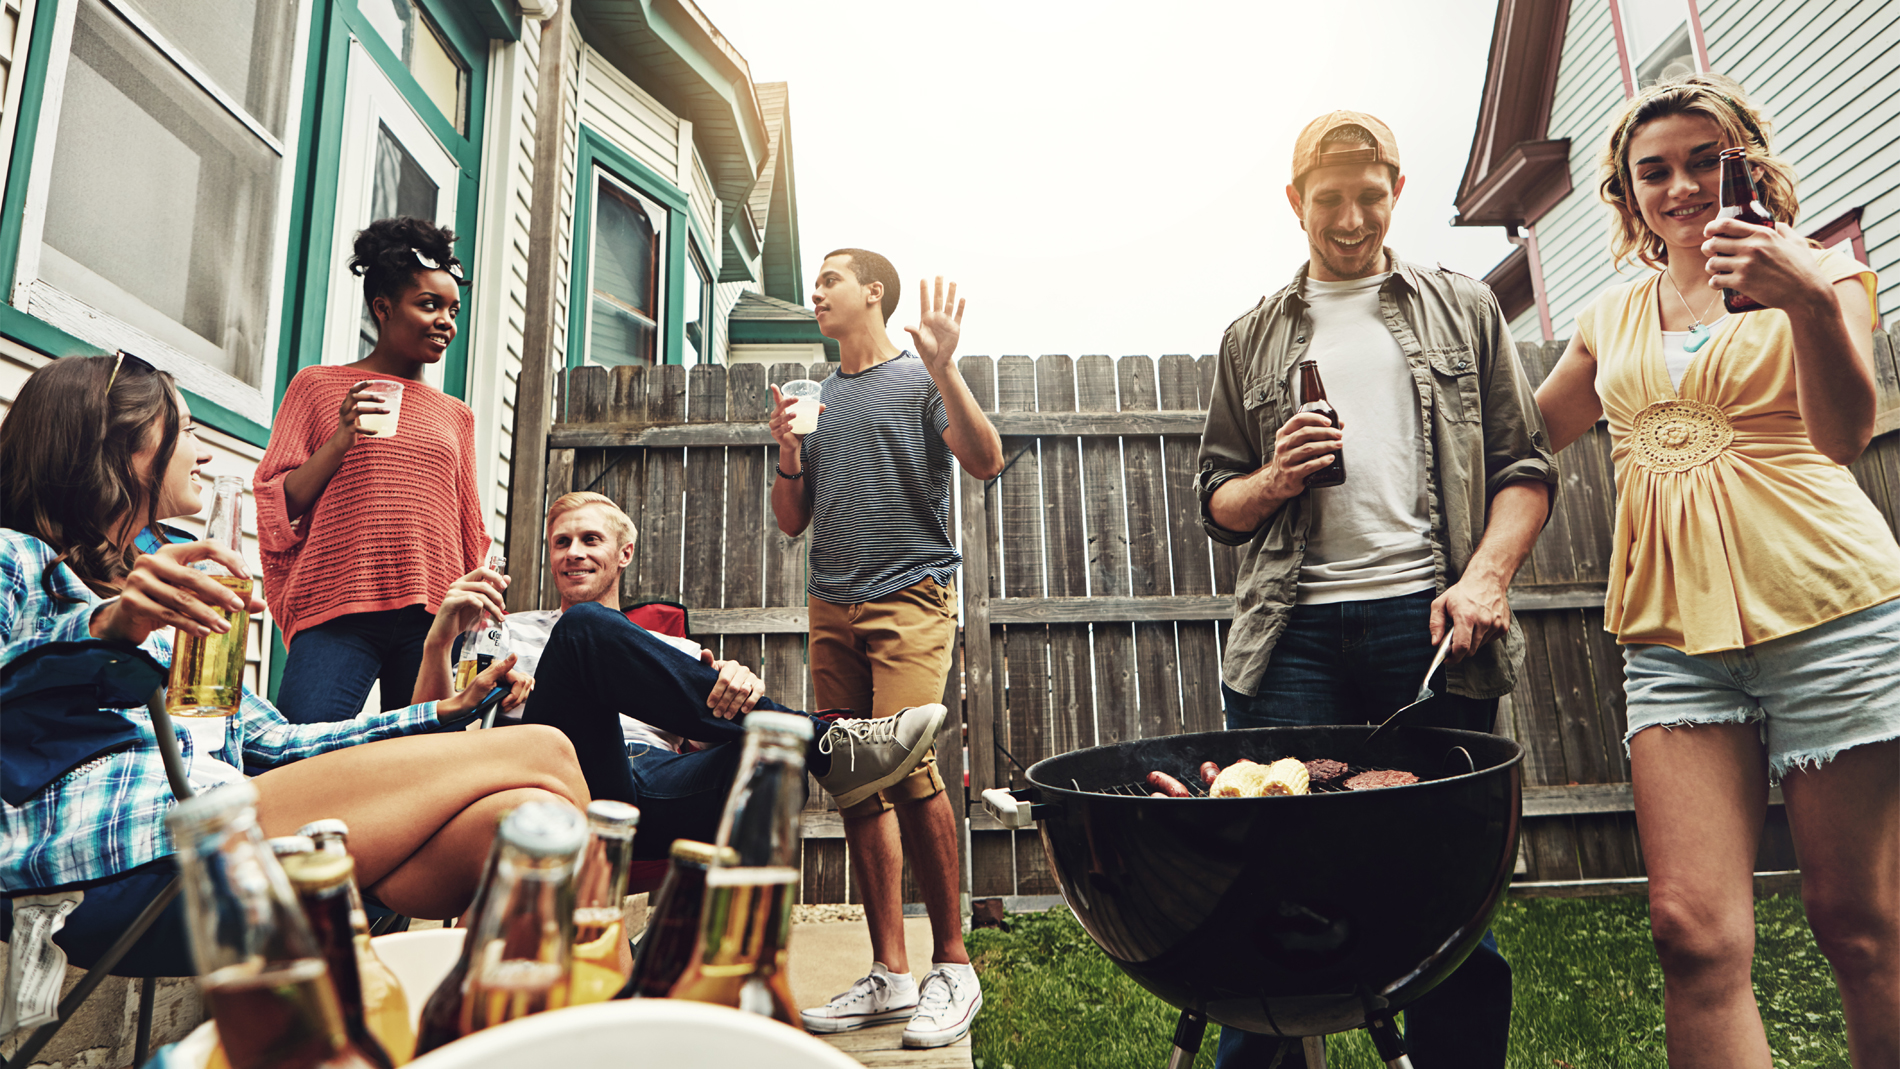 a group of people drinking beer around a grill